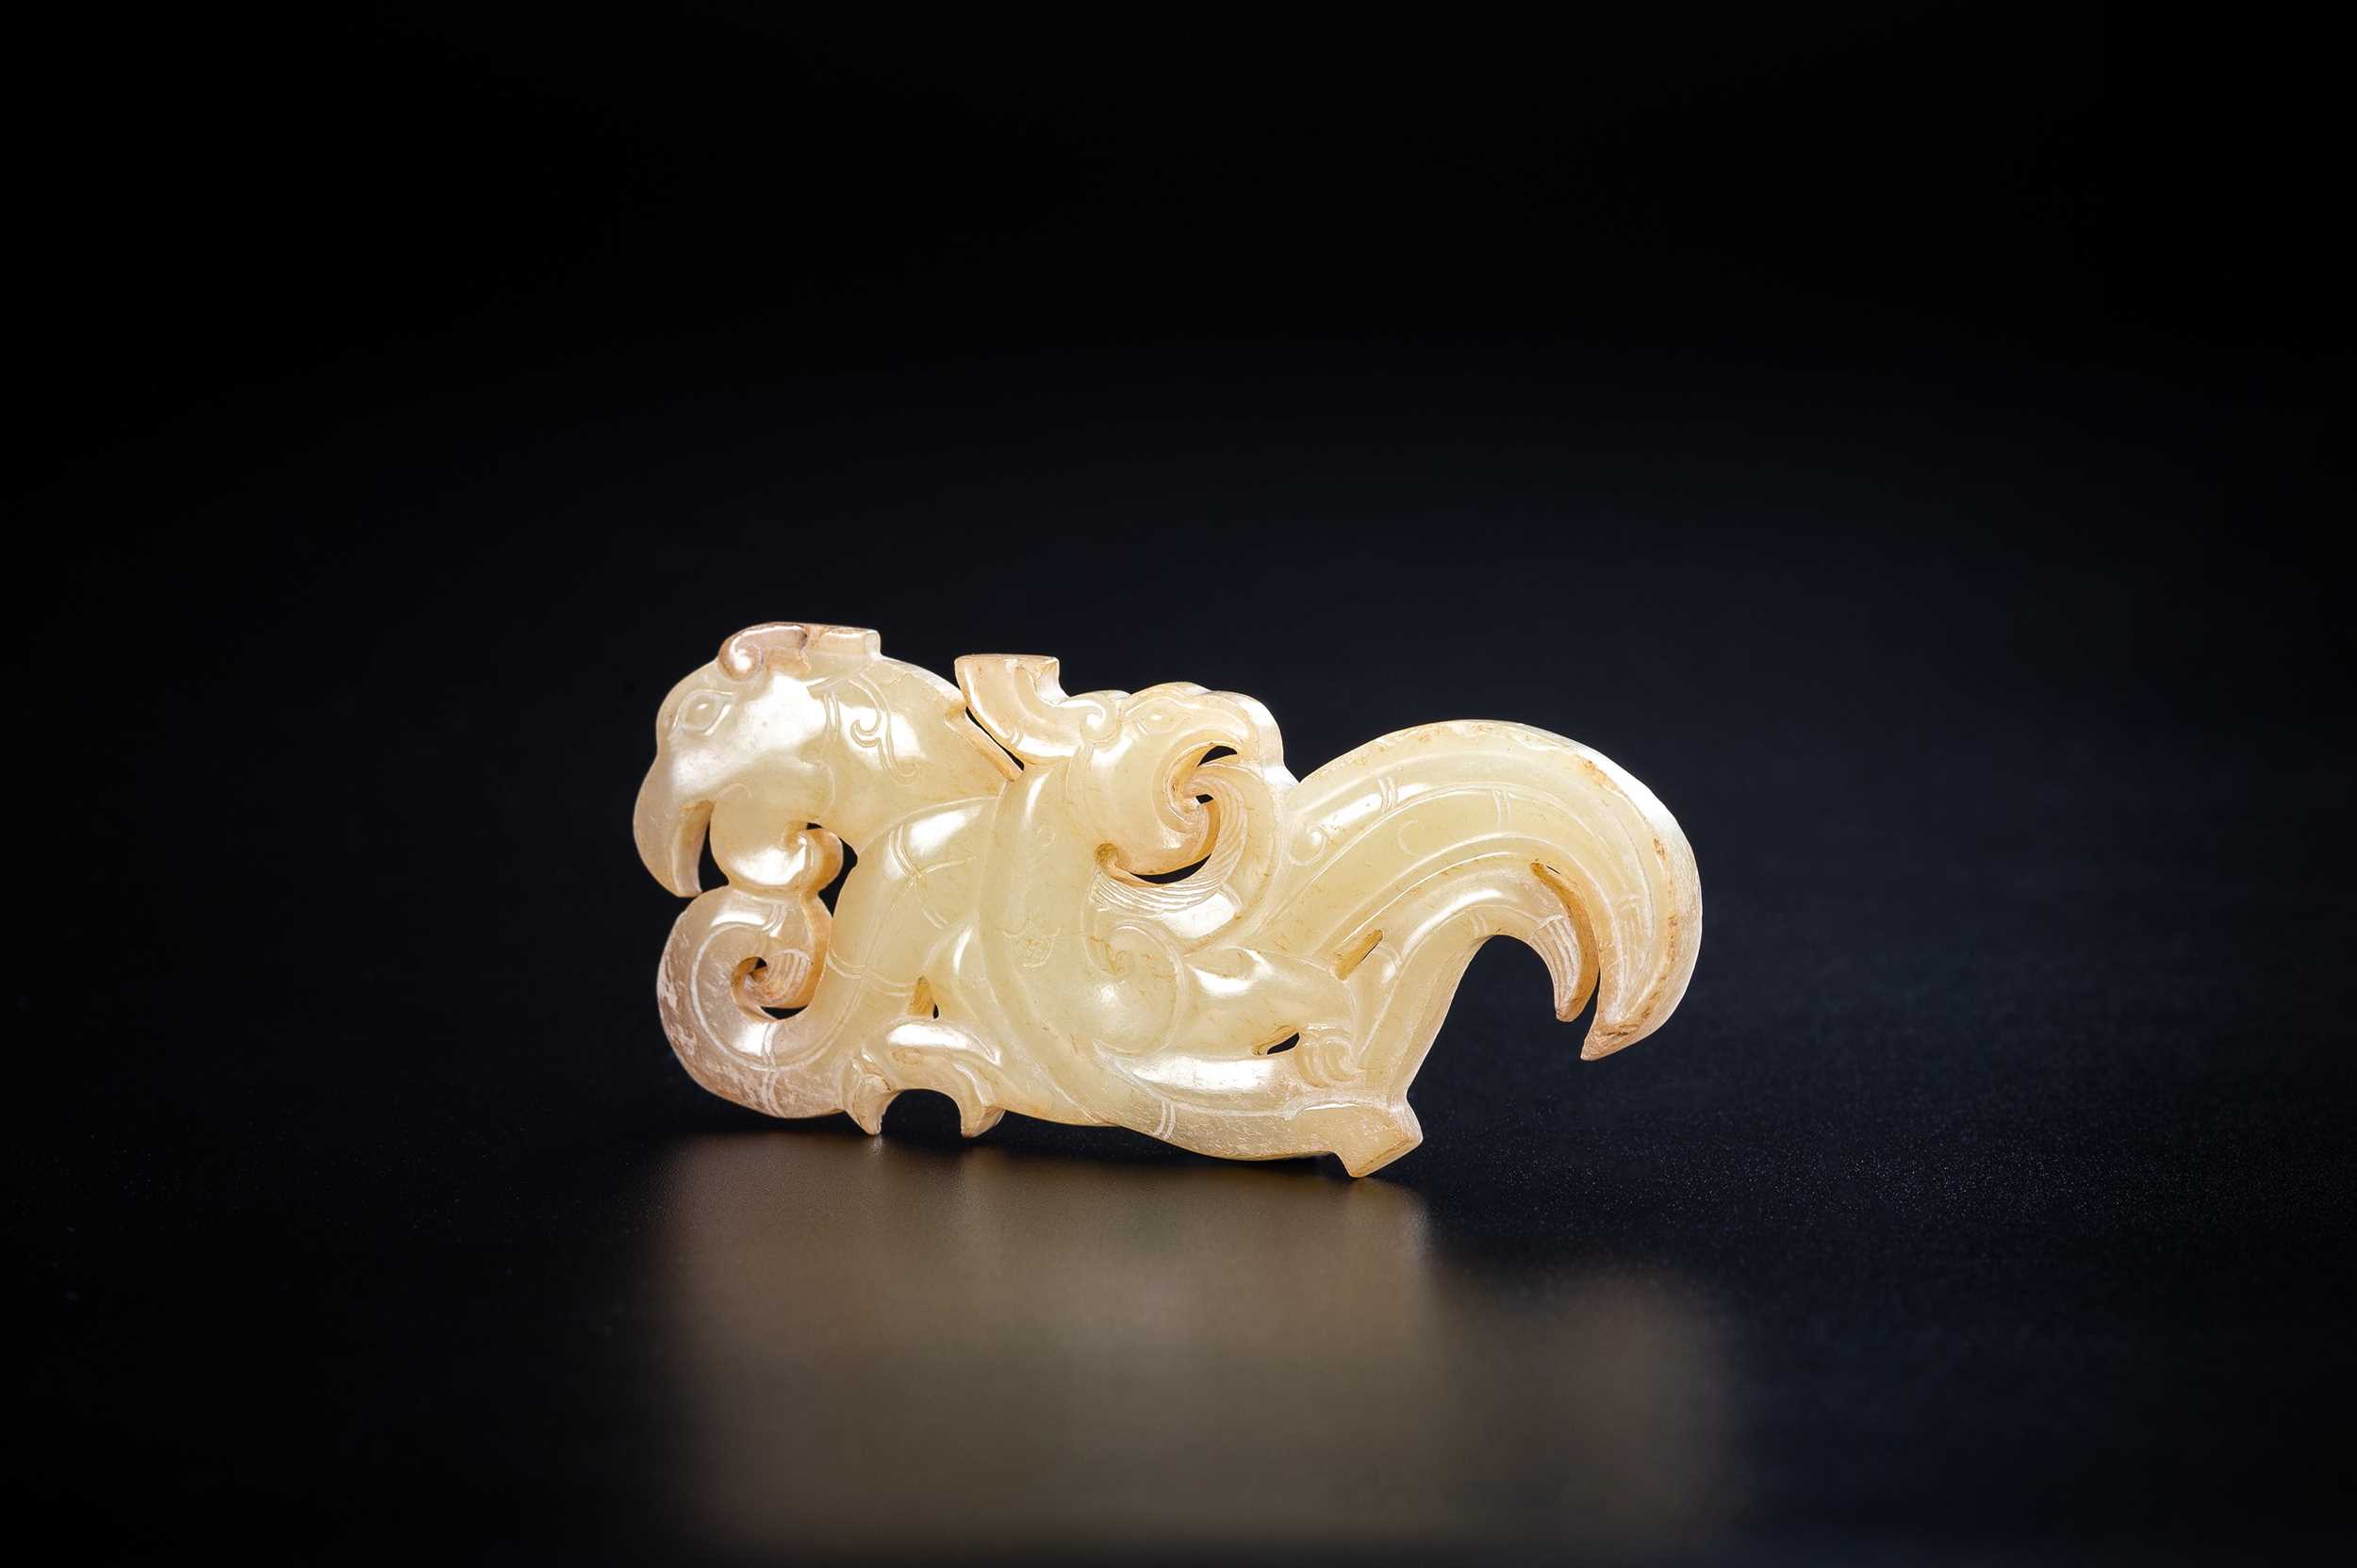 A PALE GREEN JADE CARVING WITH DRAGON AND PHOENIX, BEISHANTOU TYPE, WESTERN HAN